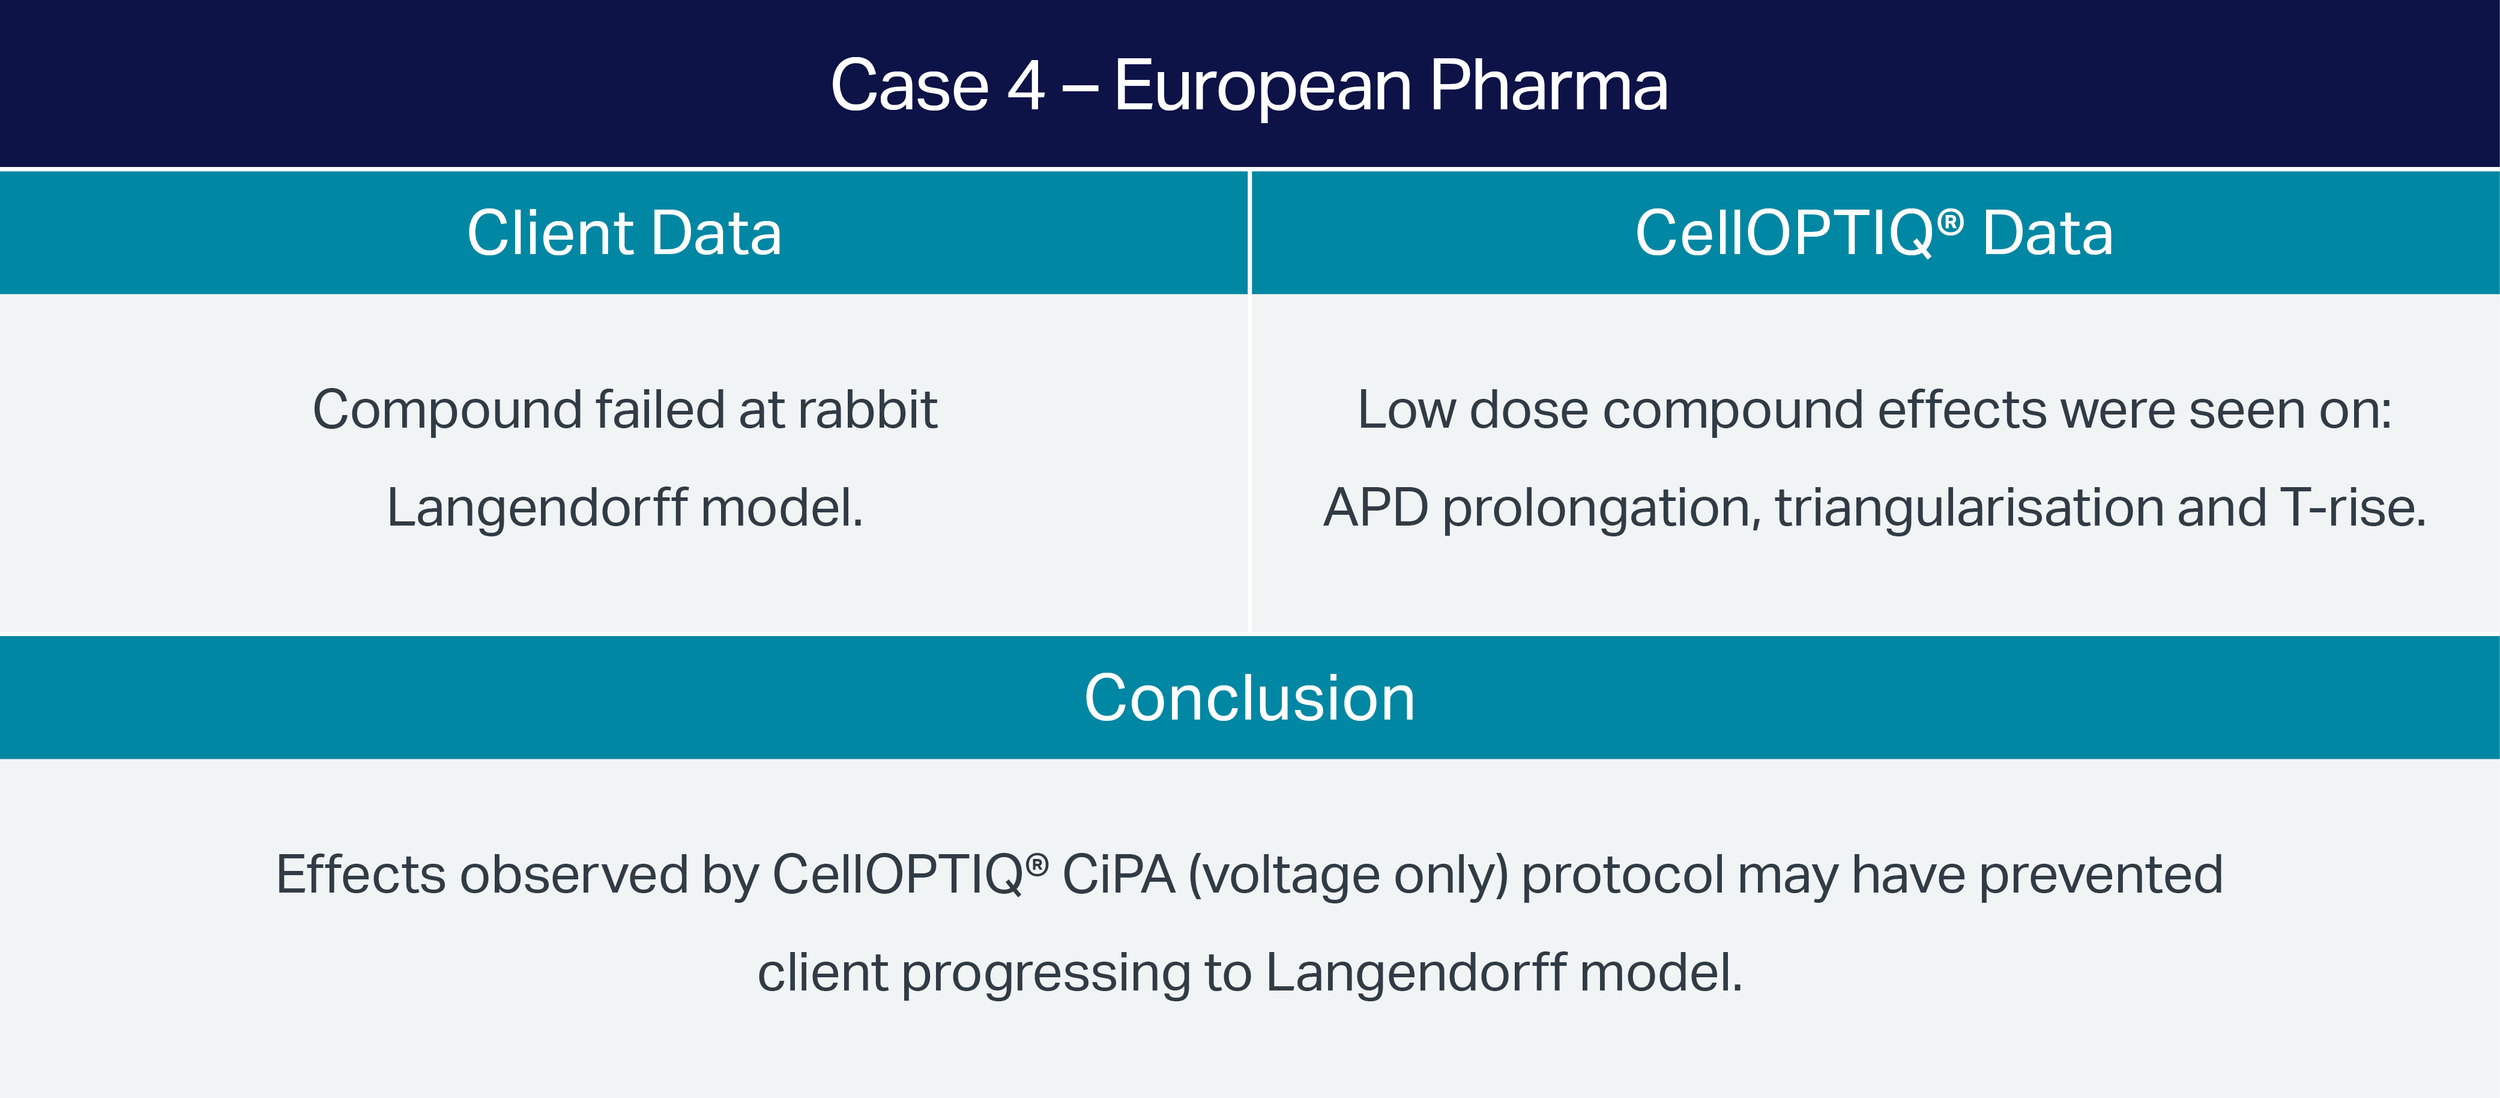 Case-4-Euro-Pharma-Assay-Comparison.png